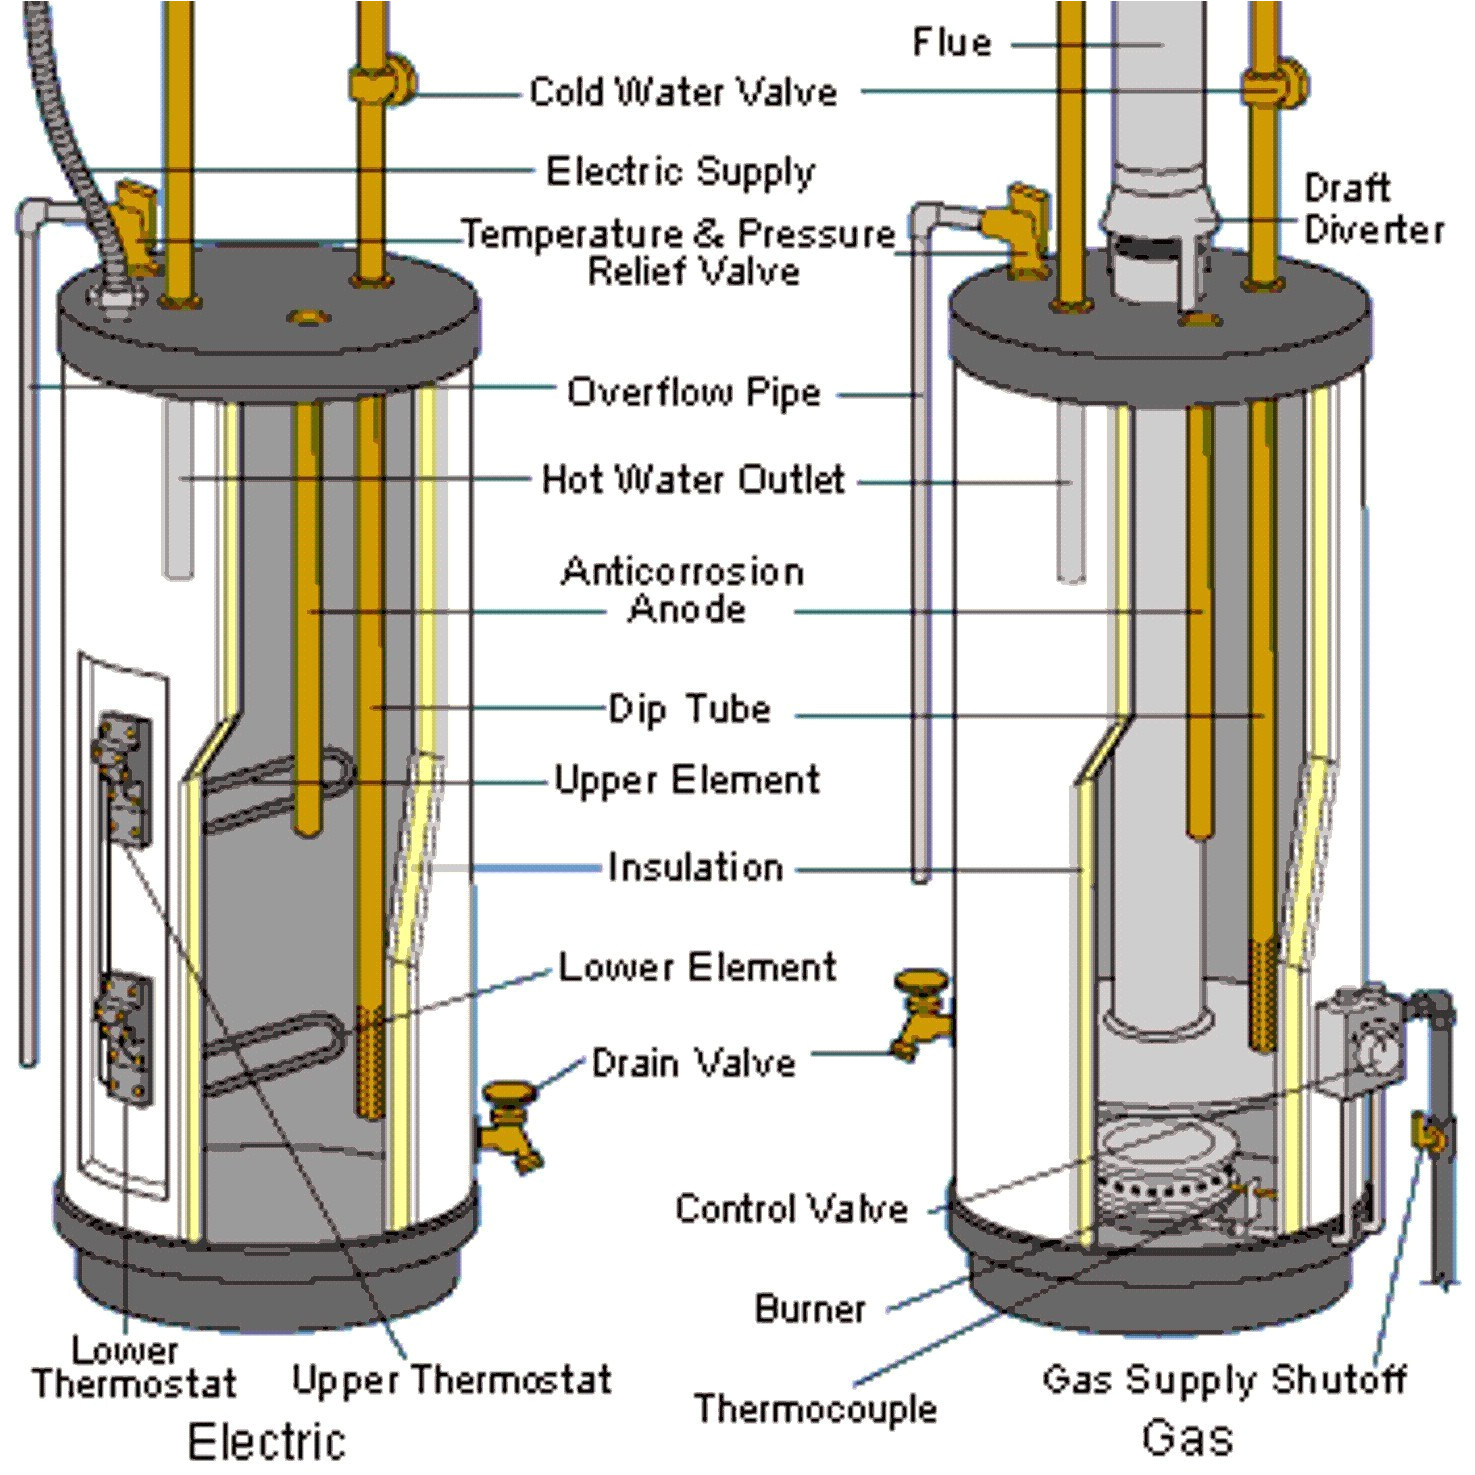 wiring diagram on whirlpool electric water whirlpool energy smart hot water  heater problems | adinaporter on whirlpool electric water heater  dimensions,